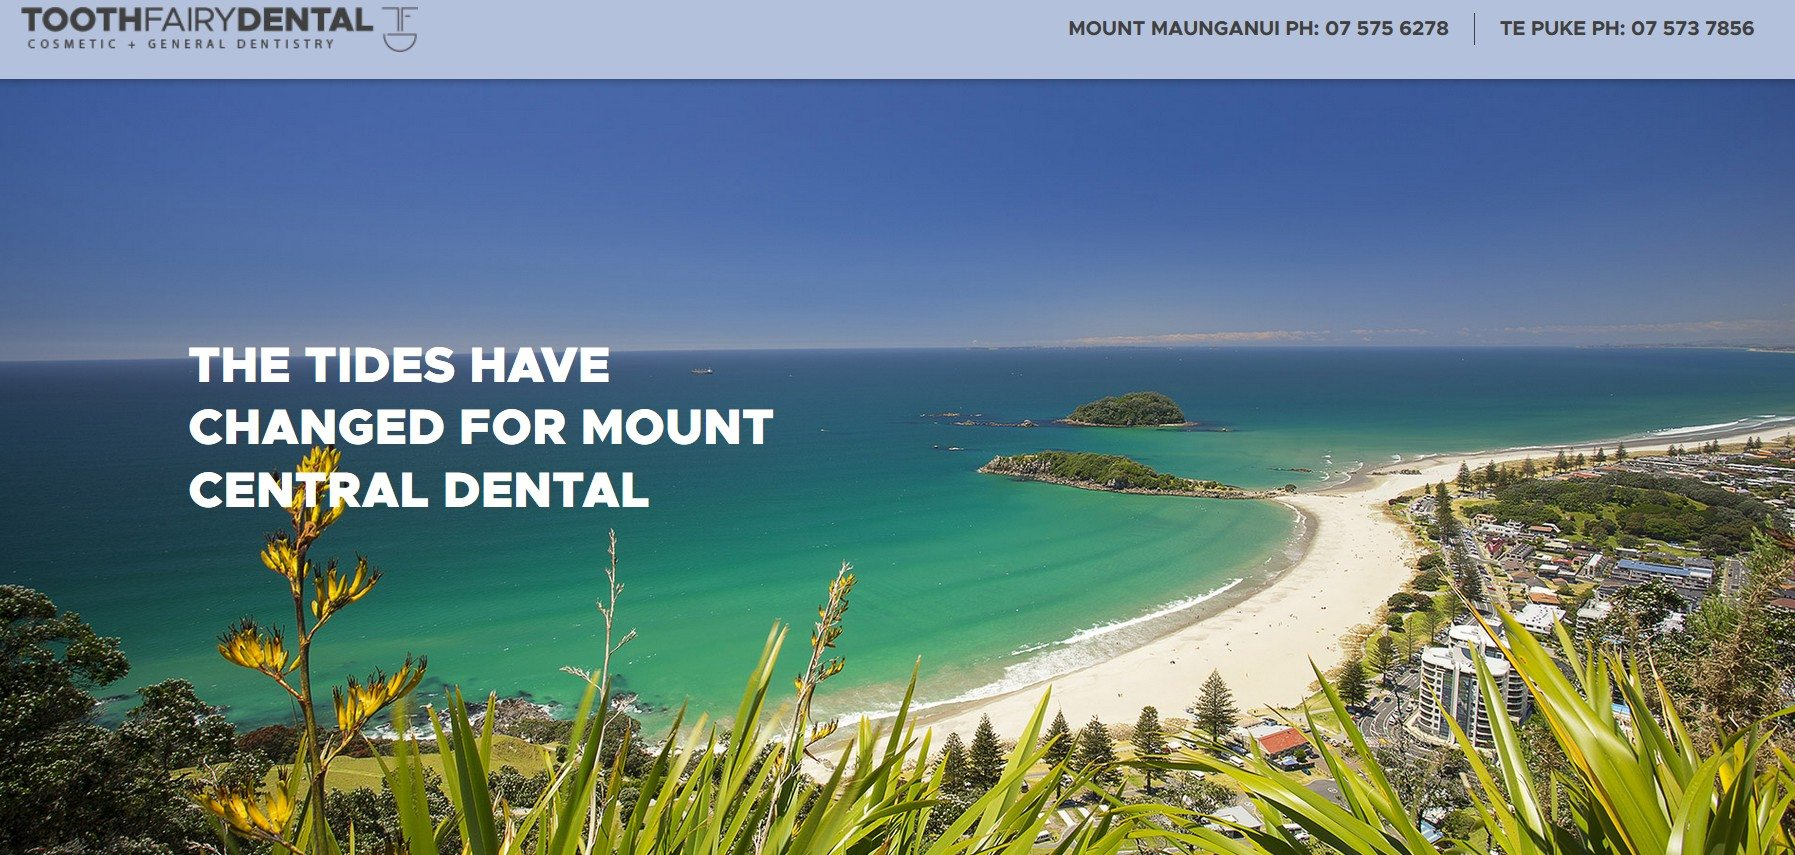 Tooth Fairy Dental Mt Maunganui